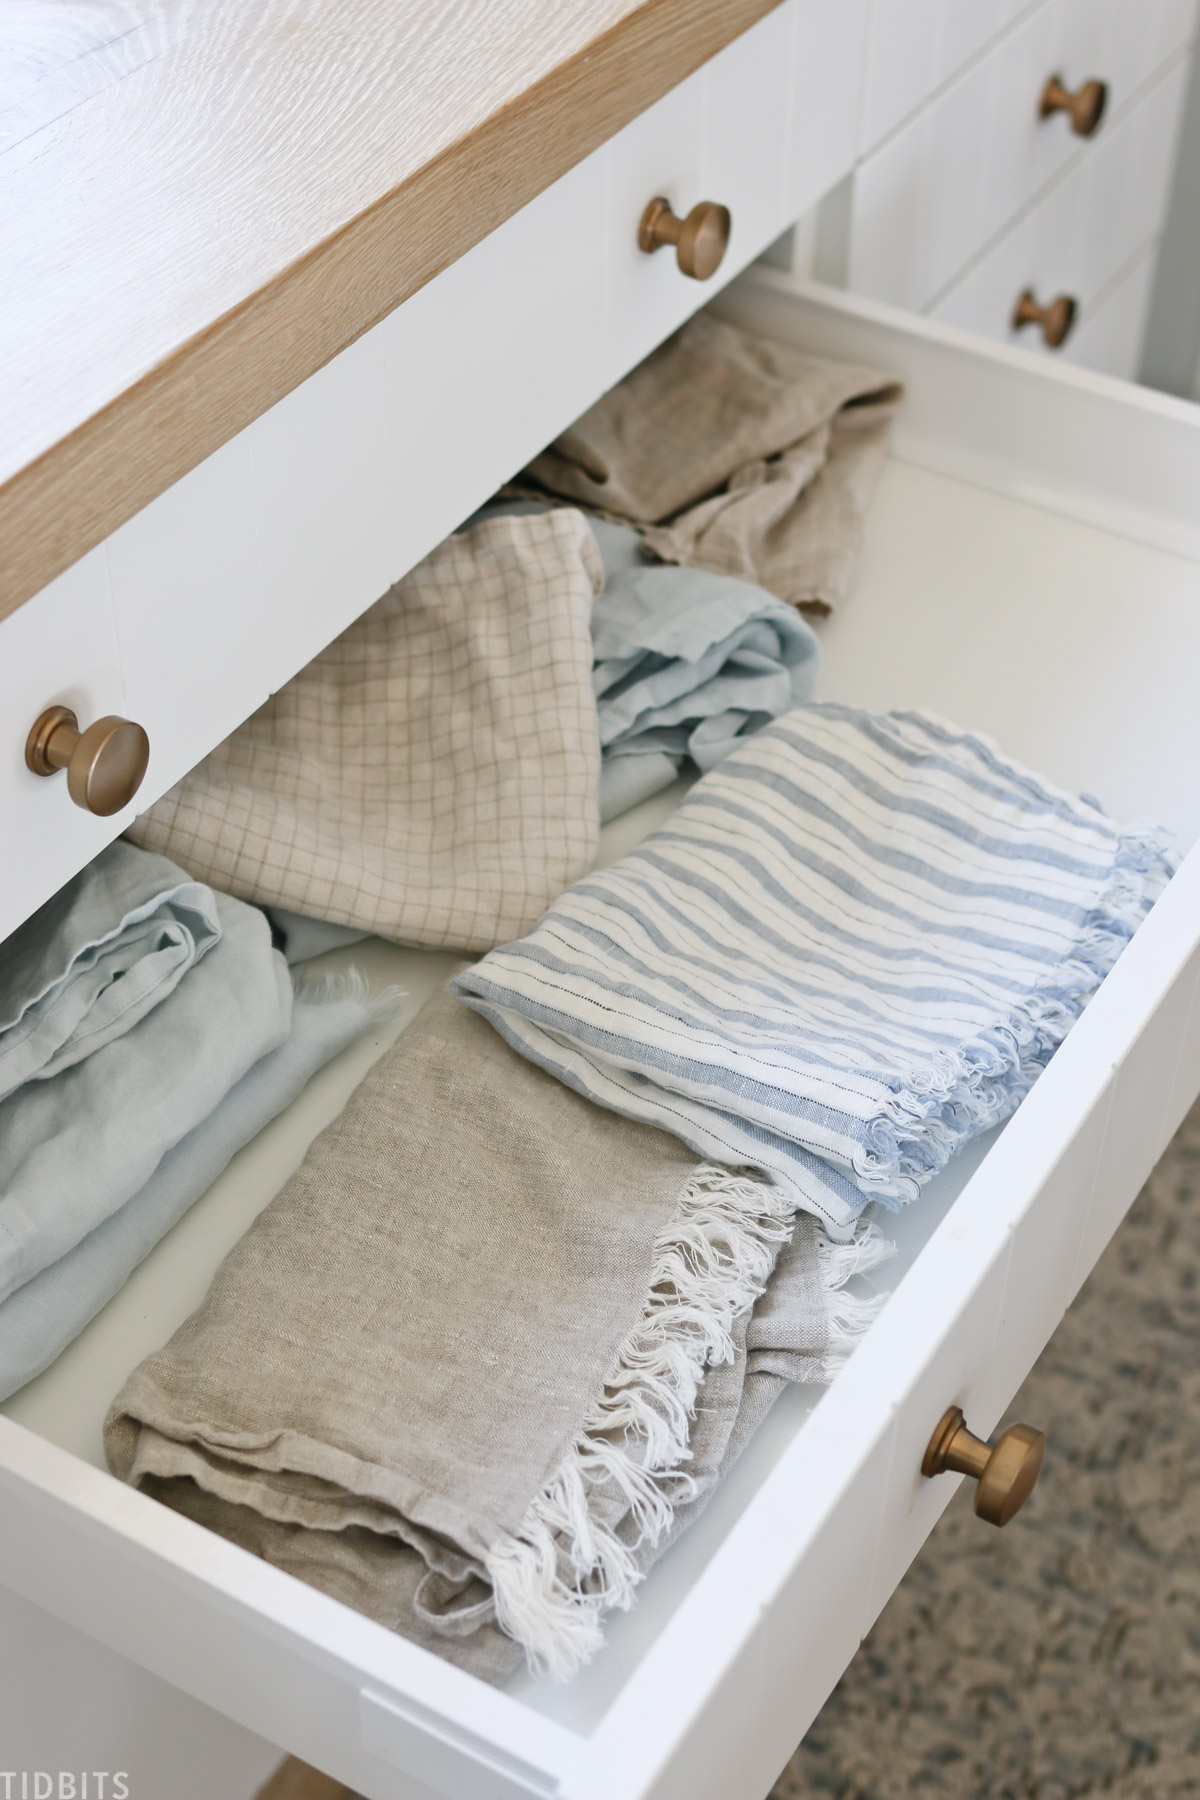 linen tea towels in drawers